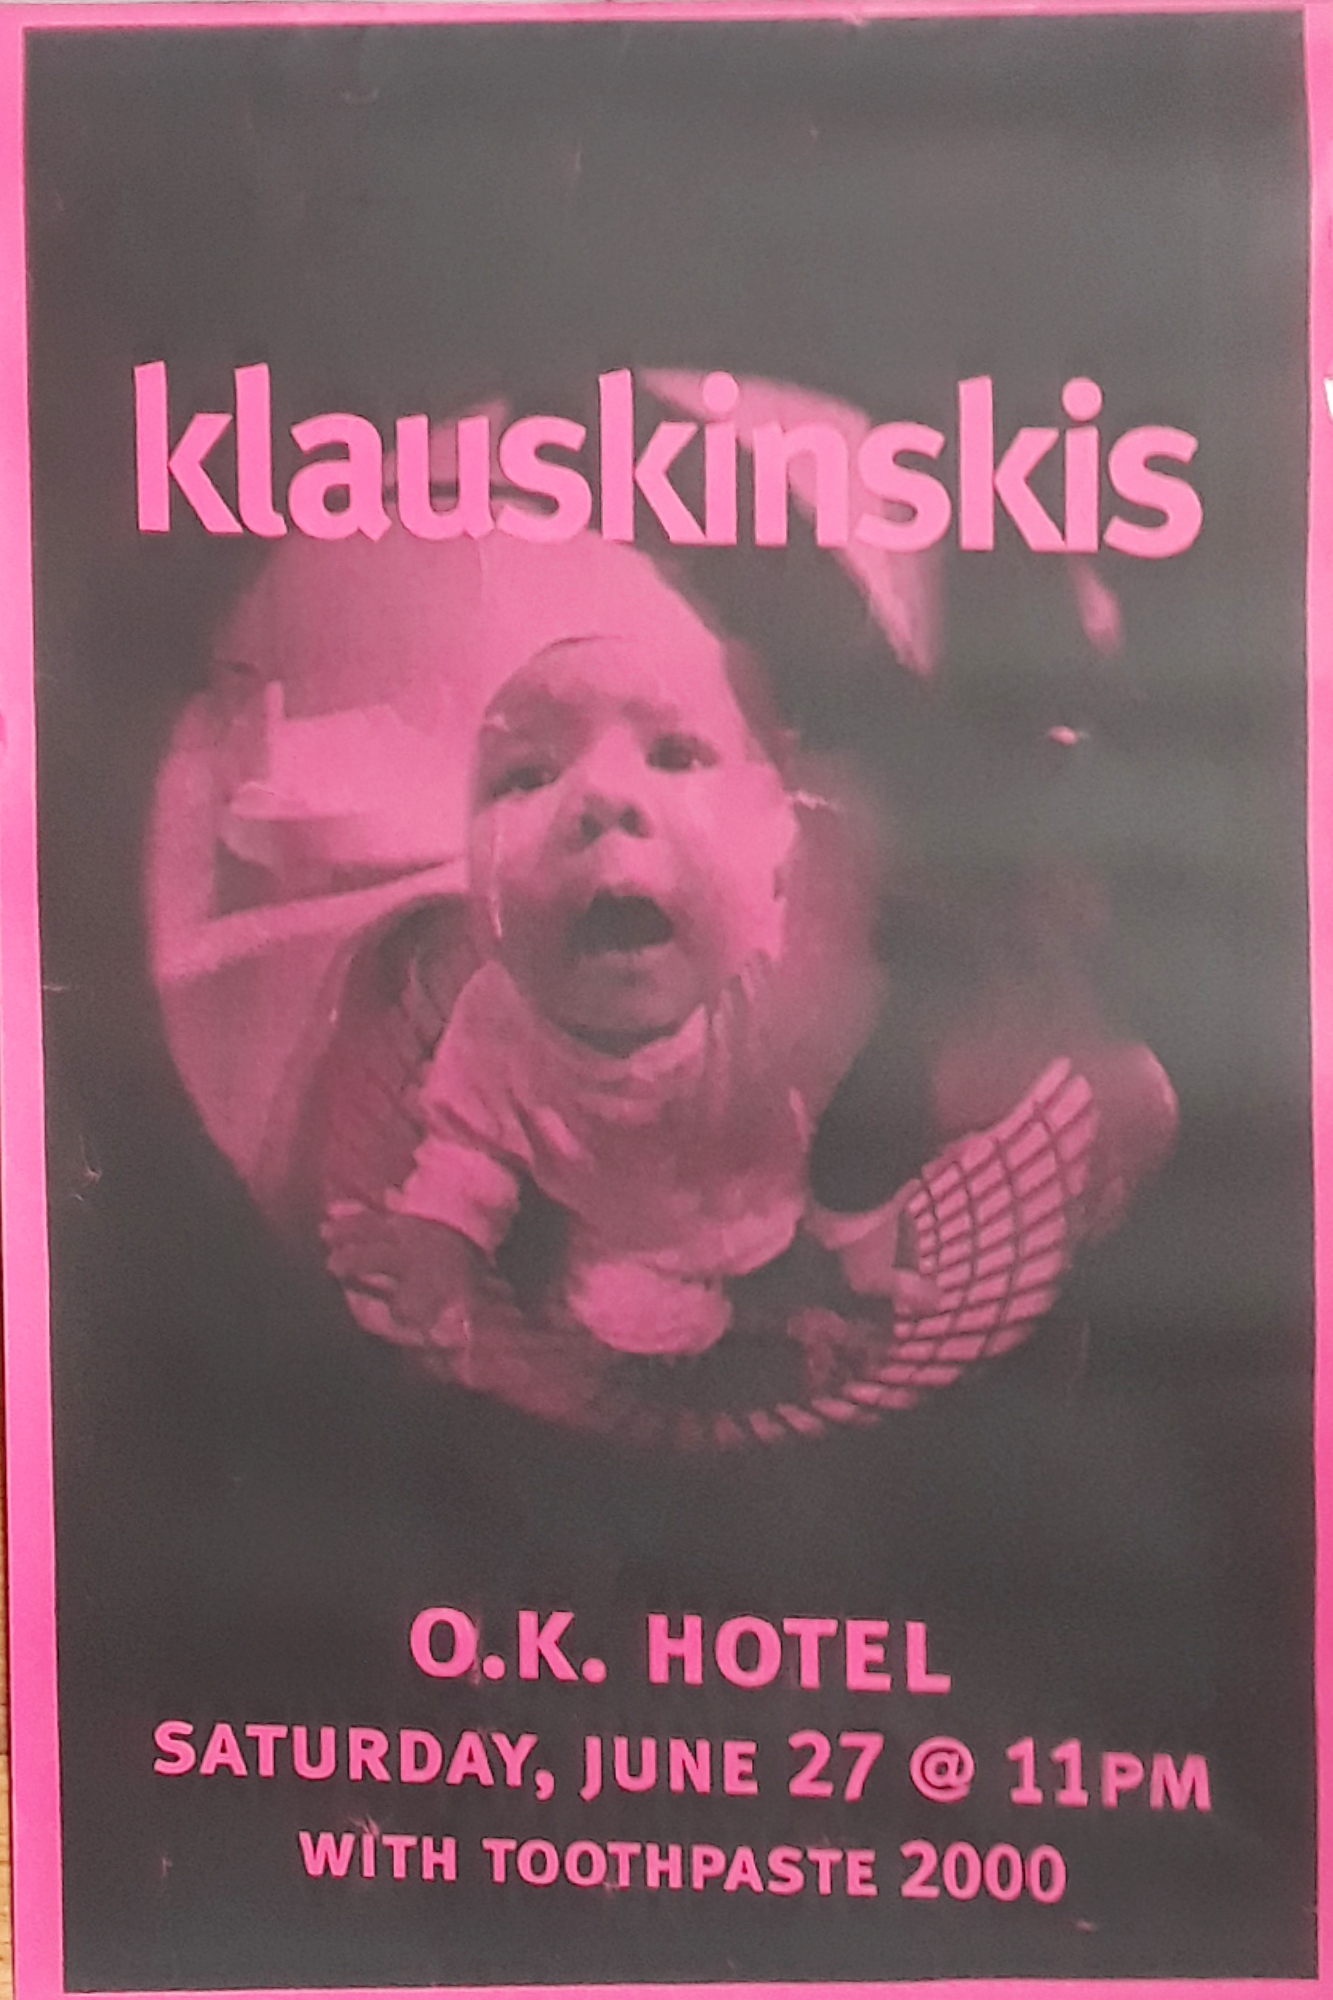 ok hotel as klaus kinskis